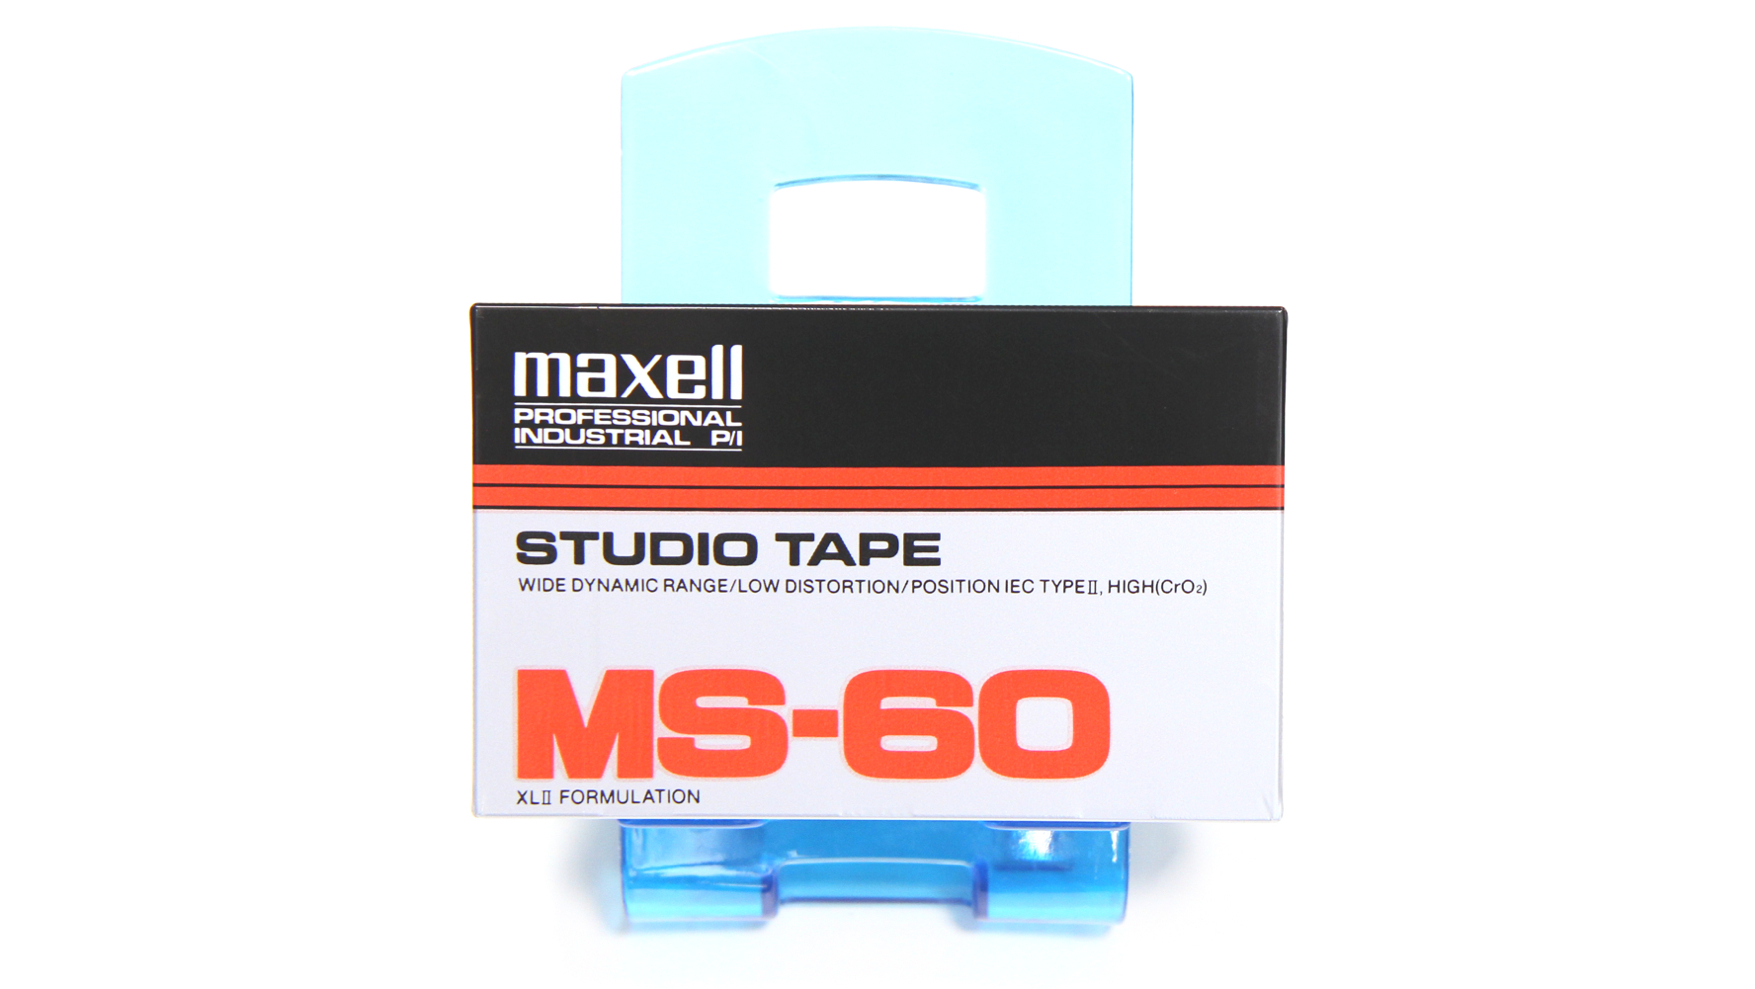 MAXELL MS-60 Studio Tape